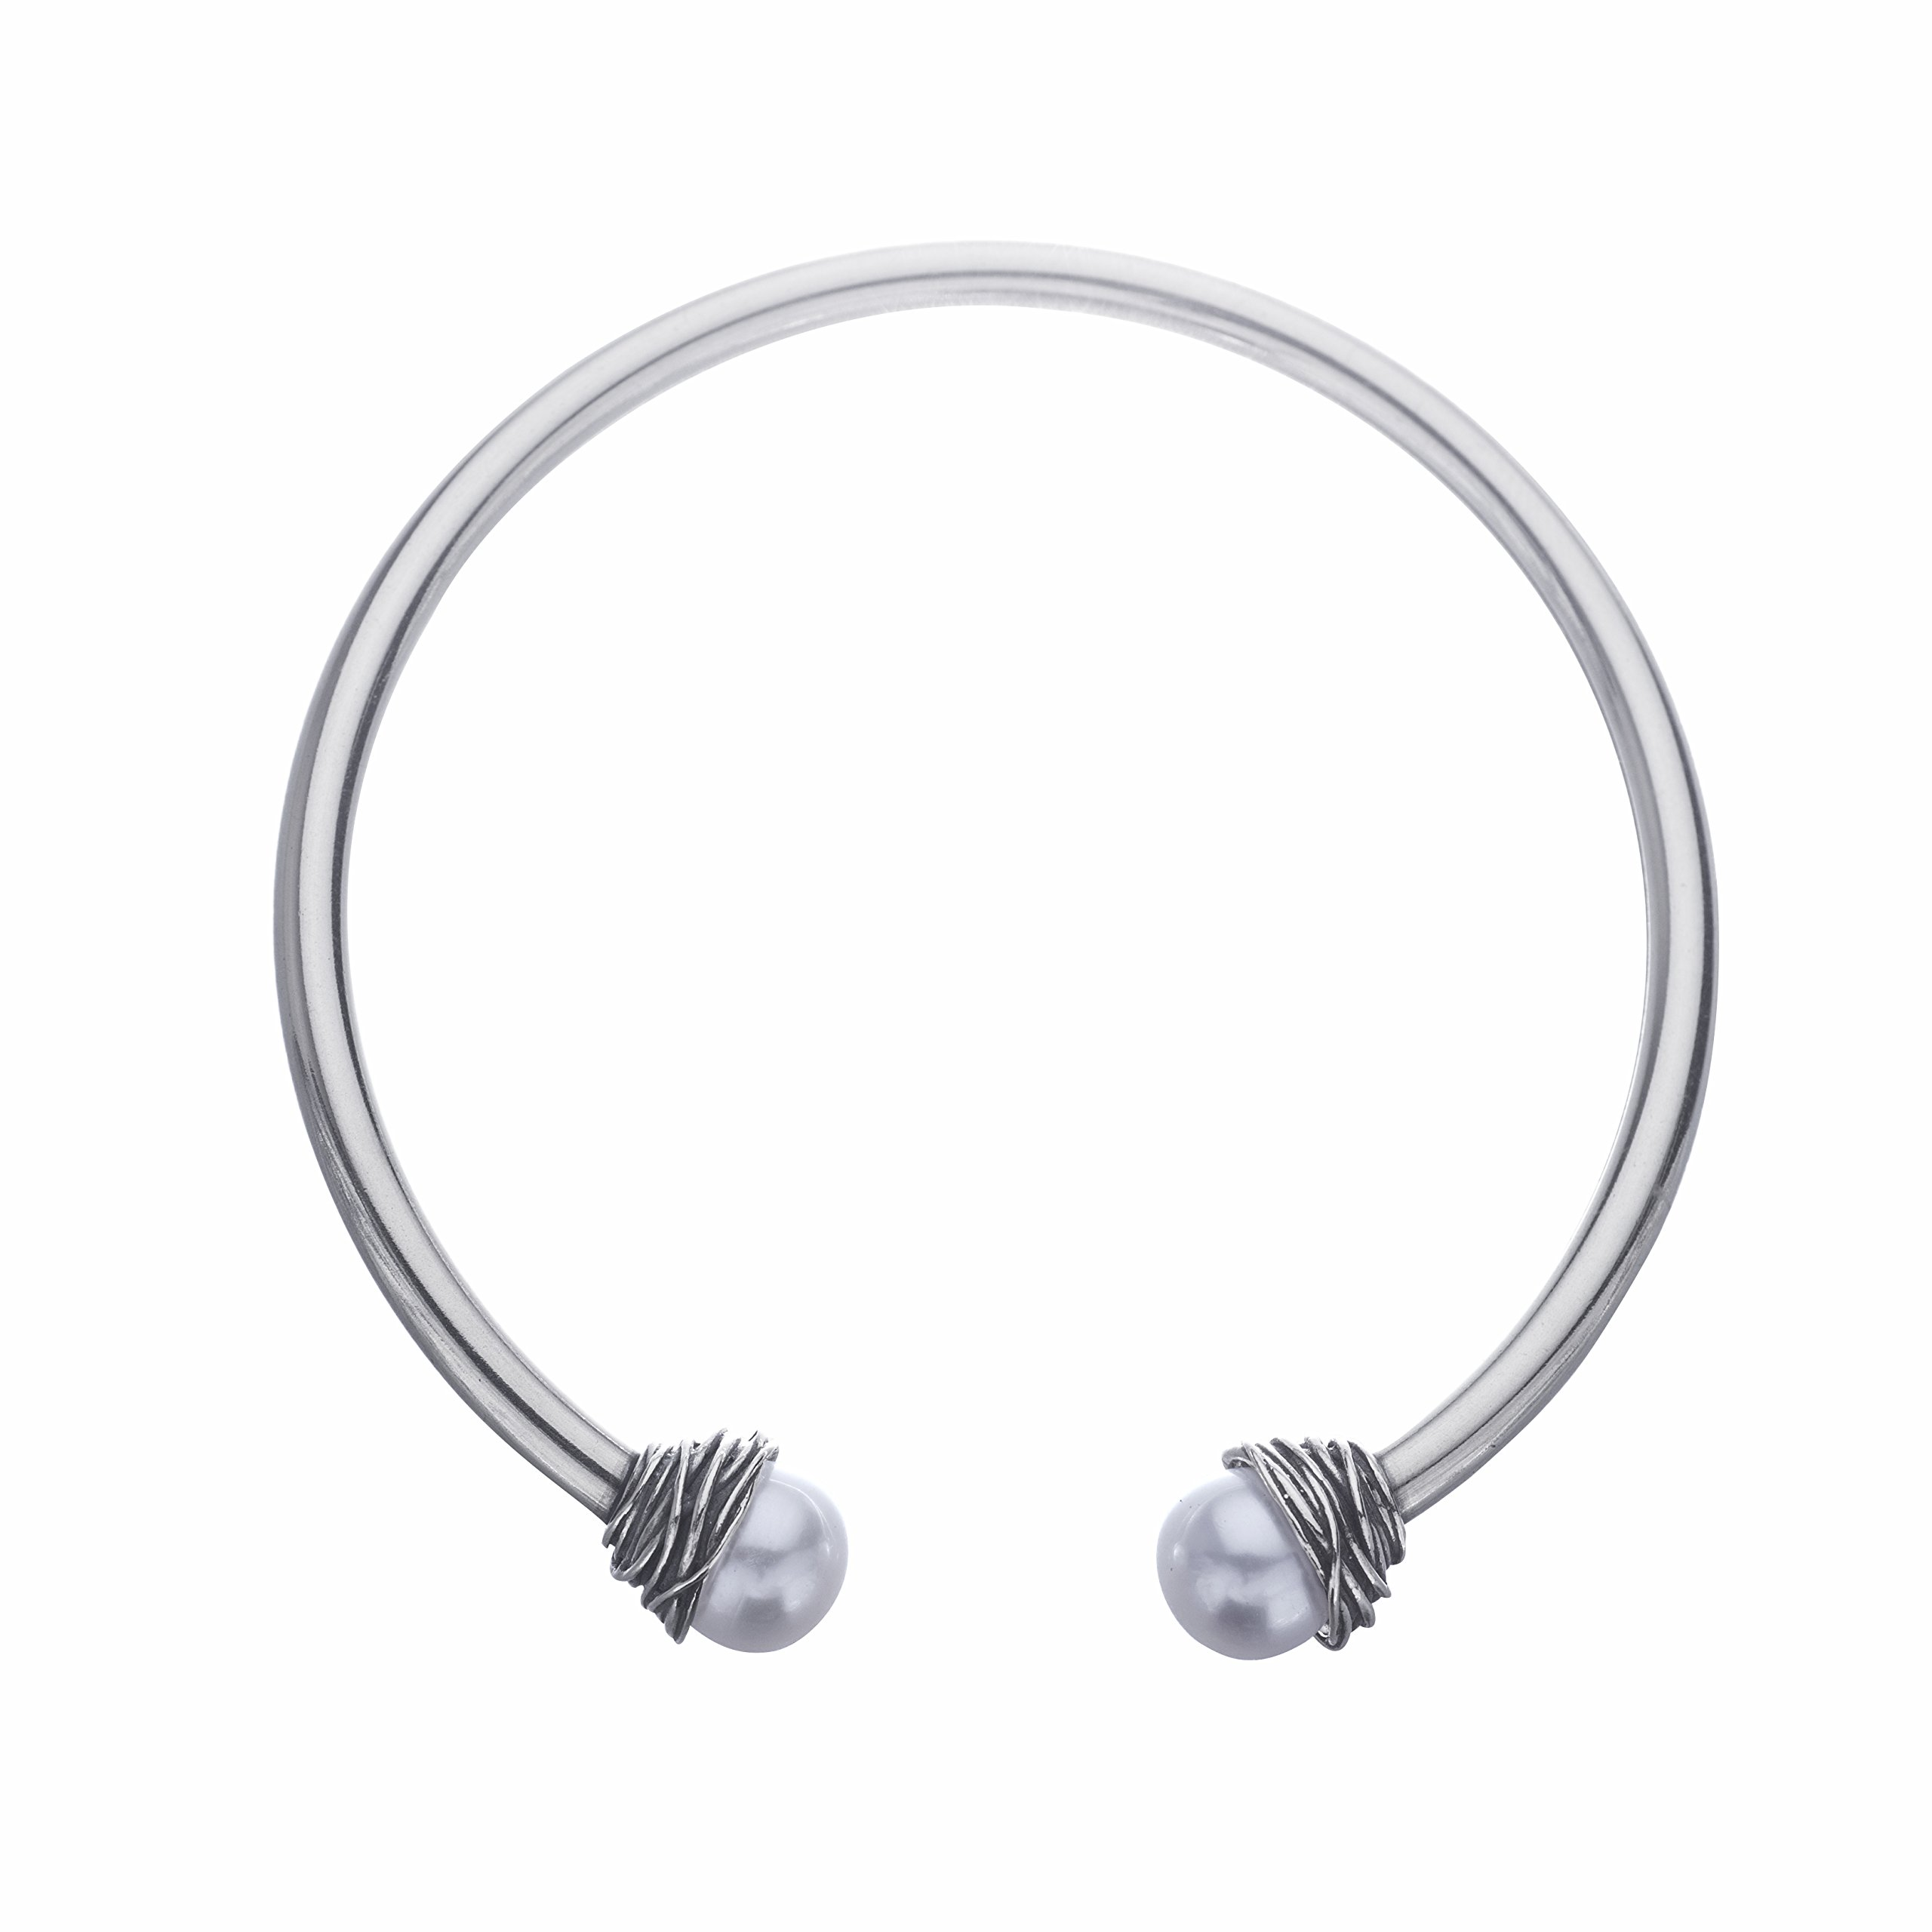 Paz Creations .925 Sterling Silver and Freshwater Cultured Pearl Flex Cuff (6.75)